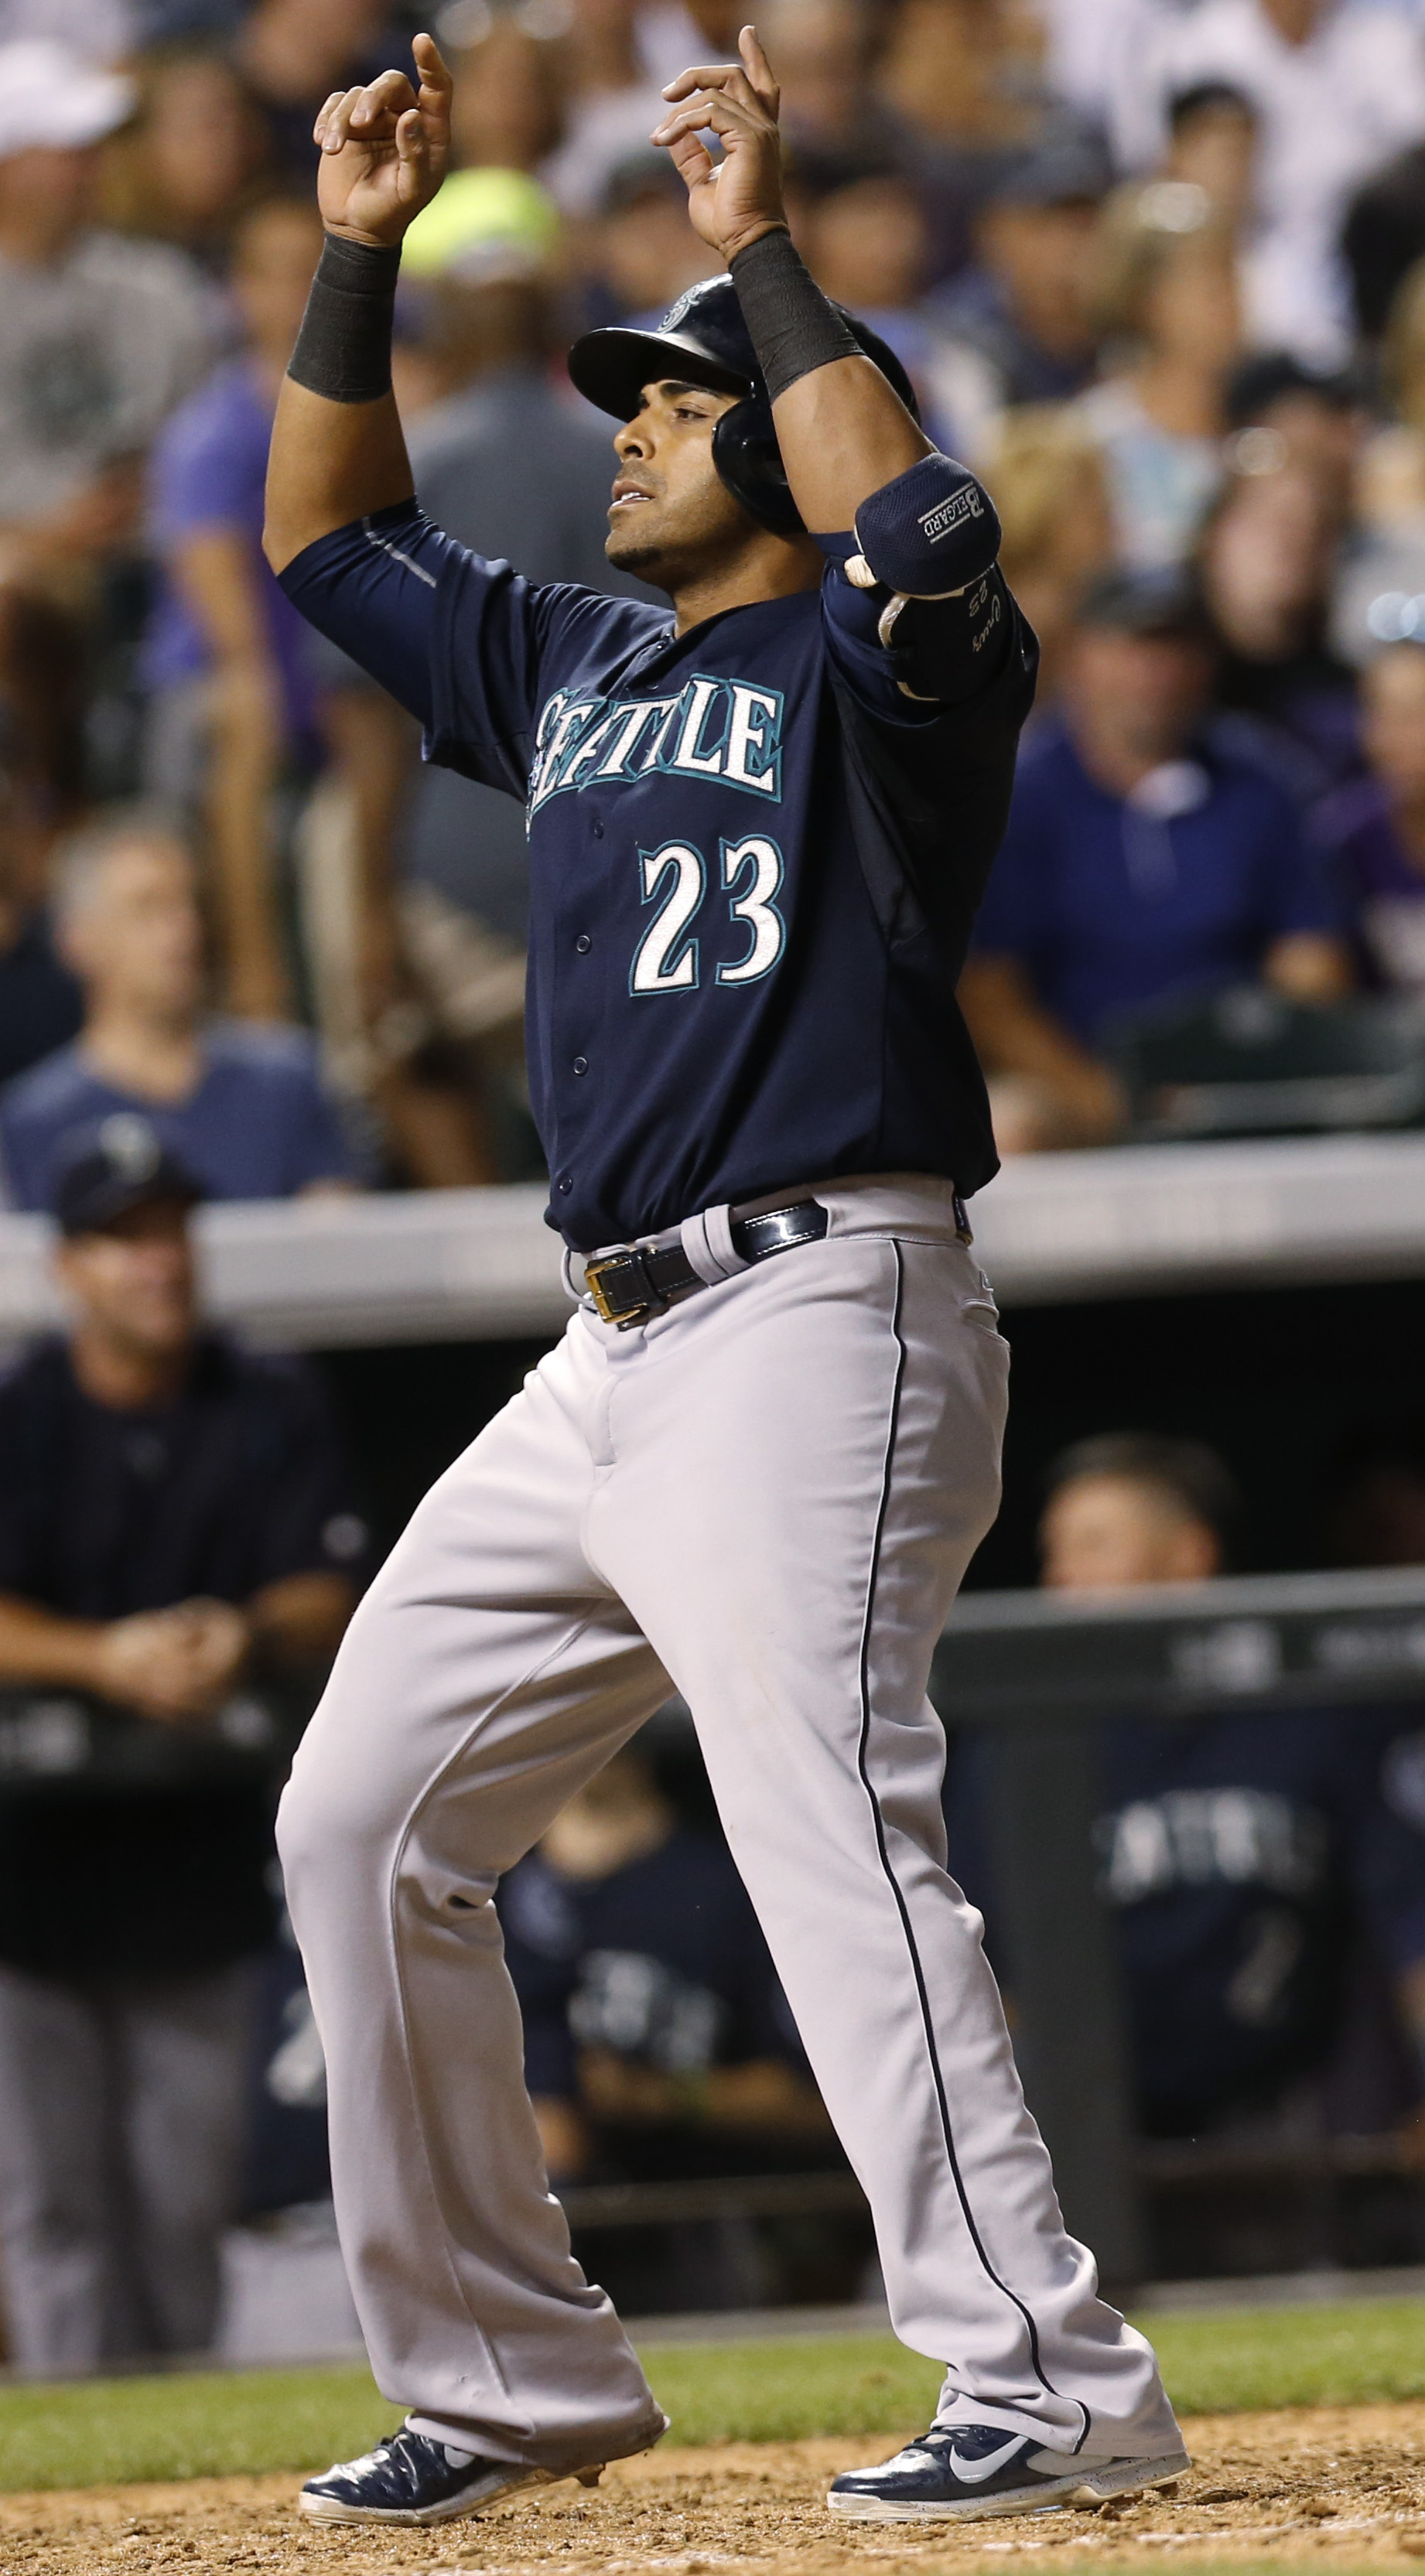 Seattle Mariners' Nelson Cruz gestures as he crosses home plate after hitting a solo home run off Colorado Rockies relief pitcher Scott Oberg to lead off the seventh inning of a baseball game Tuesday, Aug. 4, 2015, in Denver. (AP Photo/David Zalubowski)